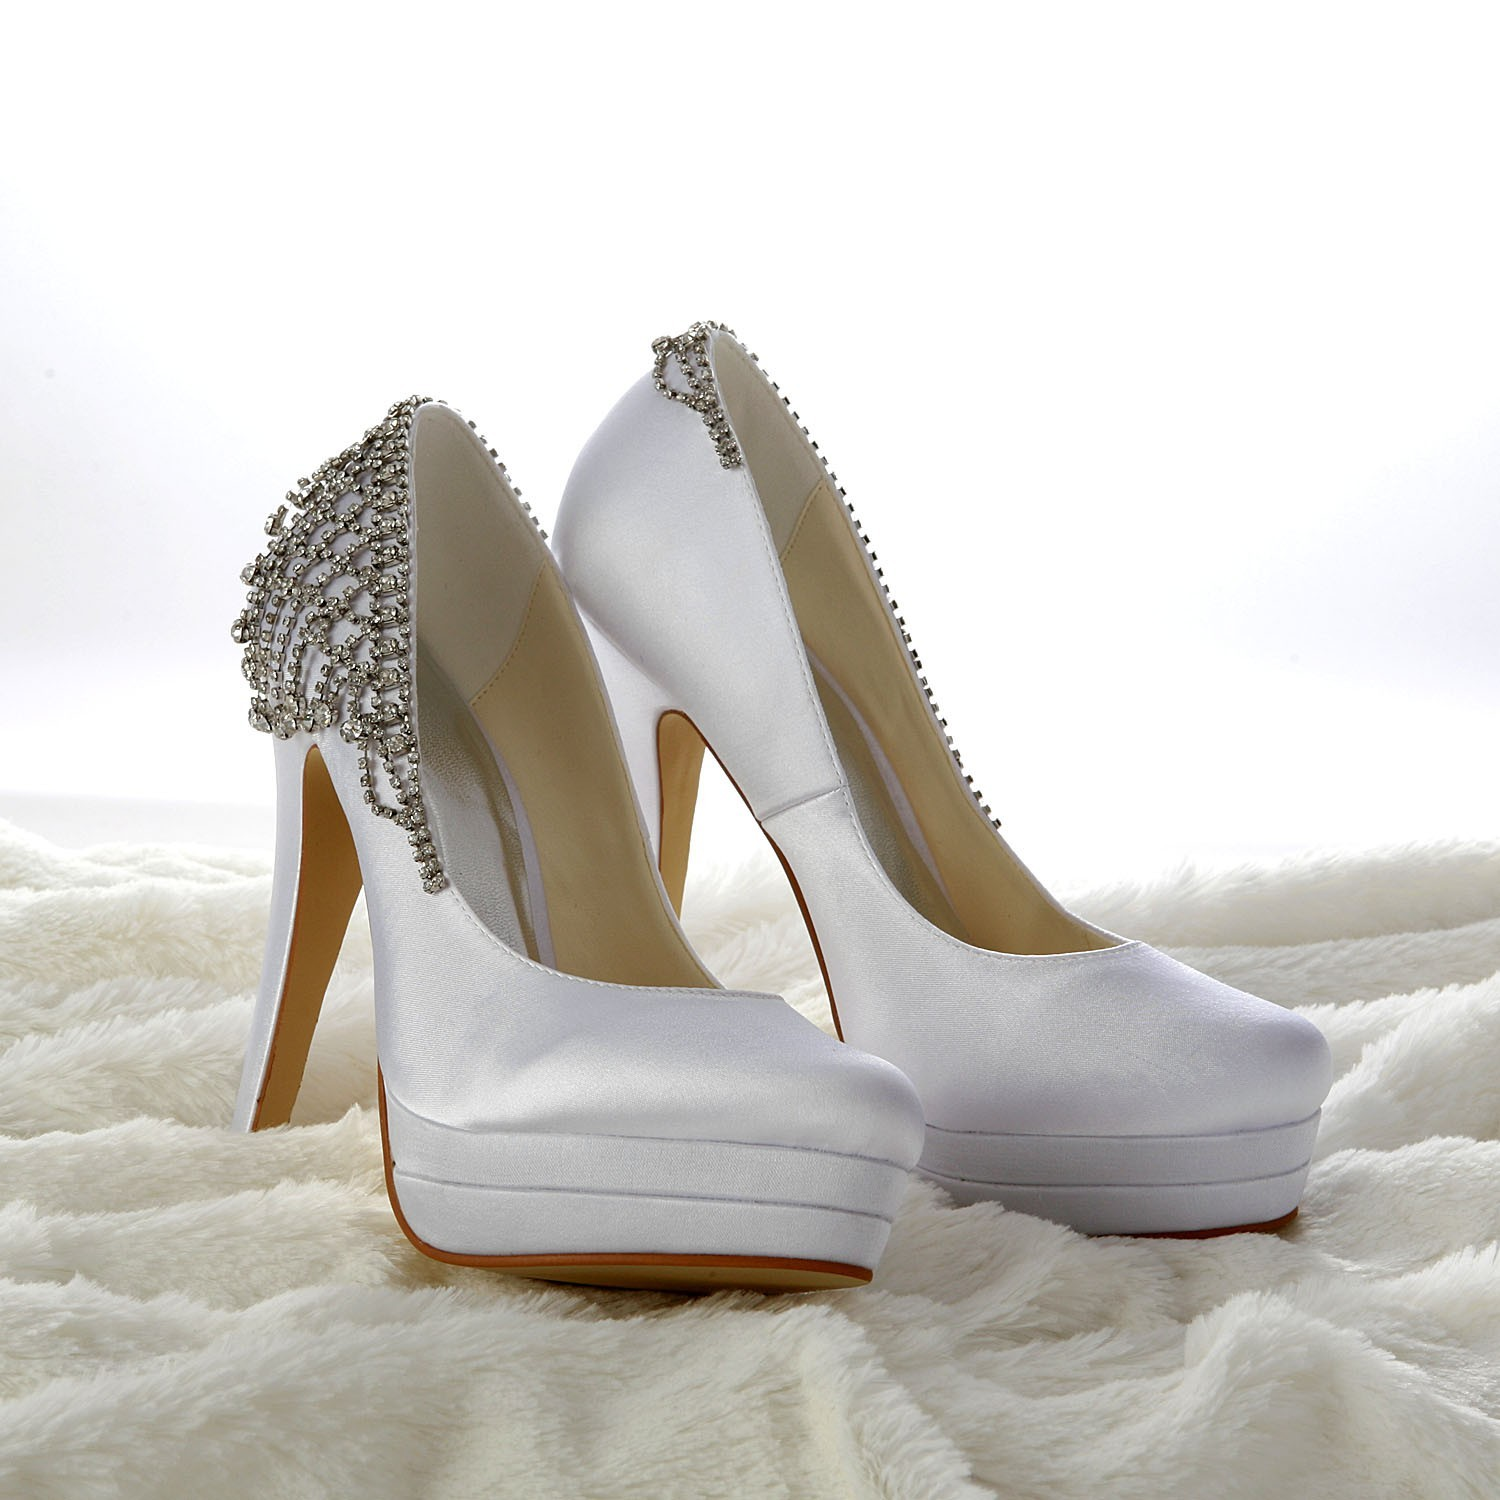 The Most Fashionable Women S Satin Stiletto Heel Closed Toe Platform White Wedding Shoes With Rhinestone